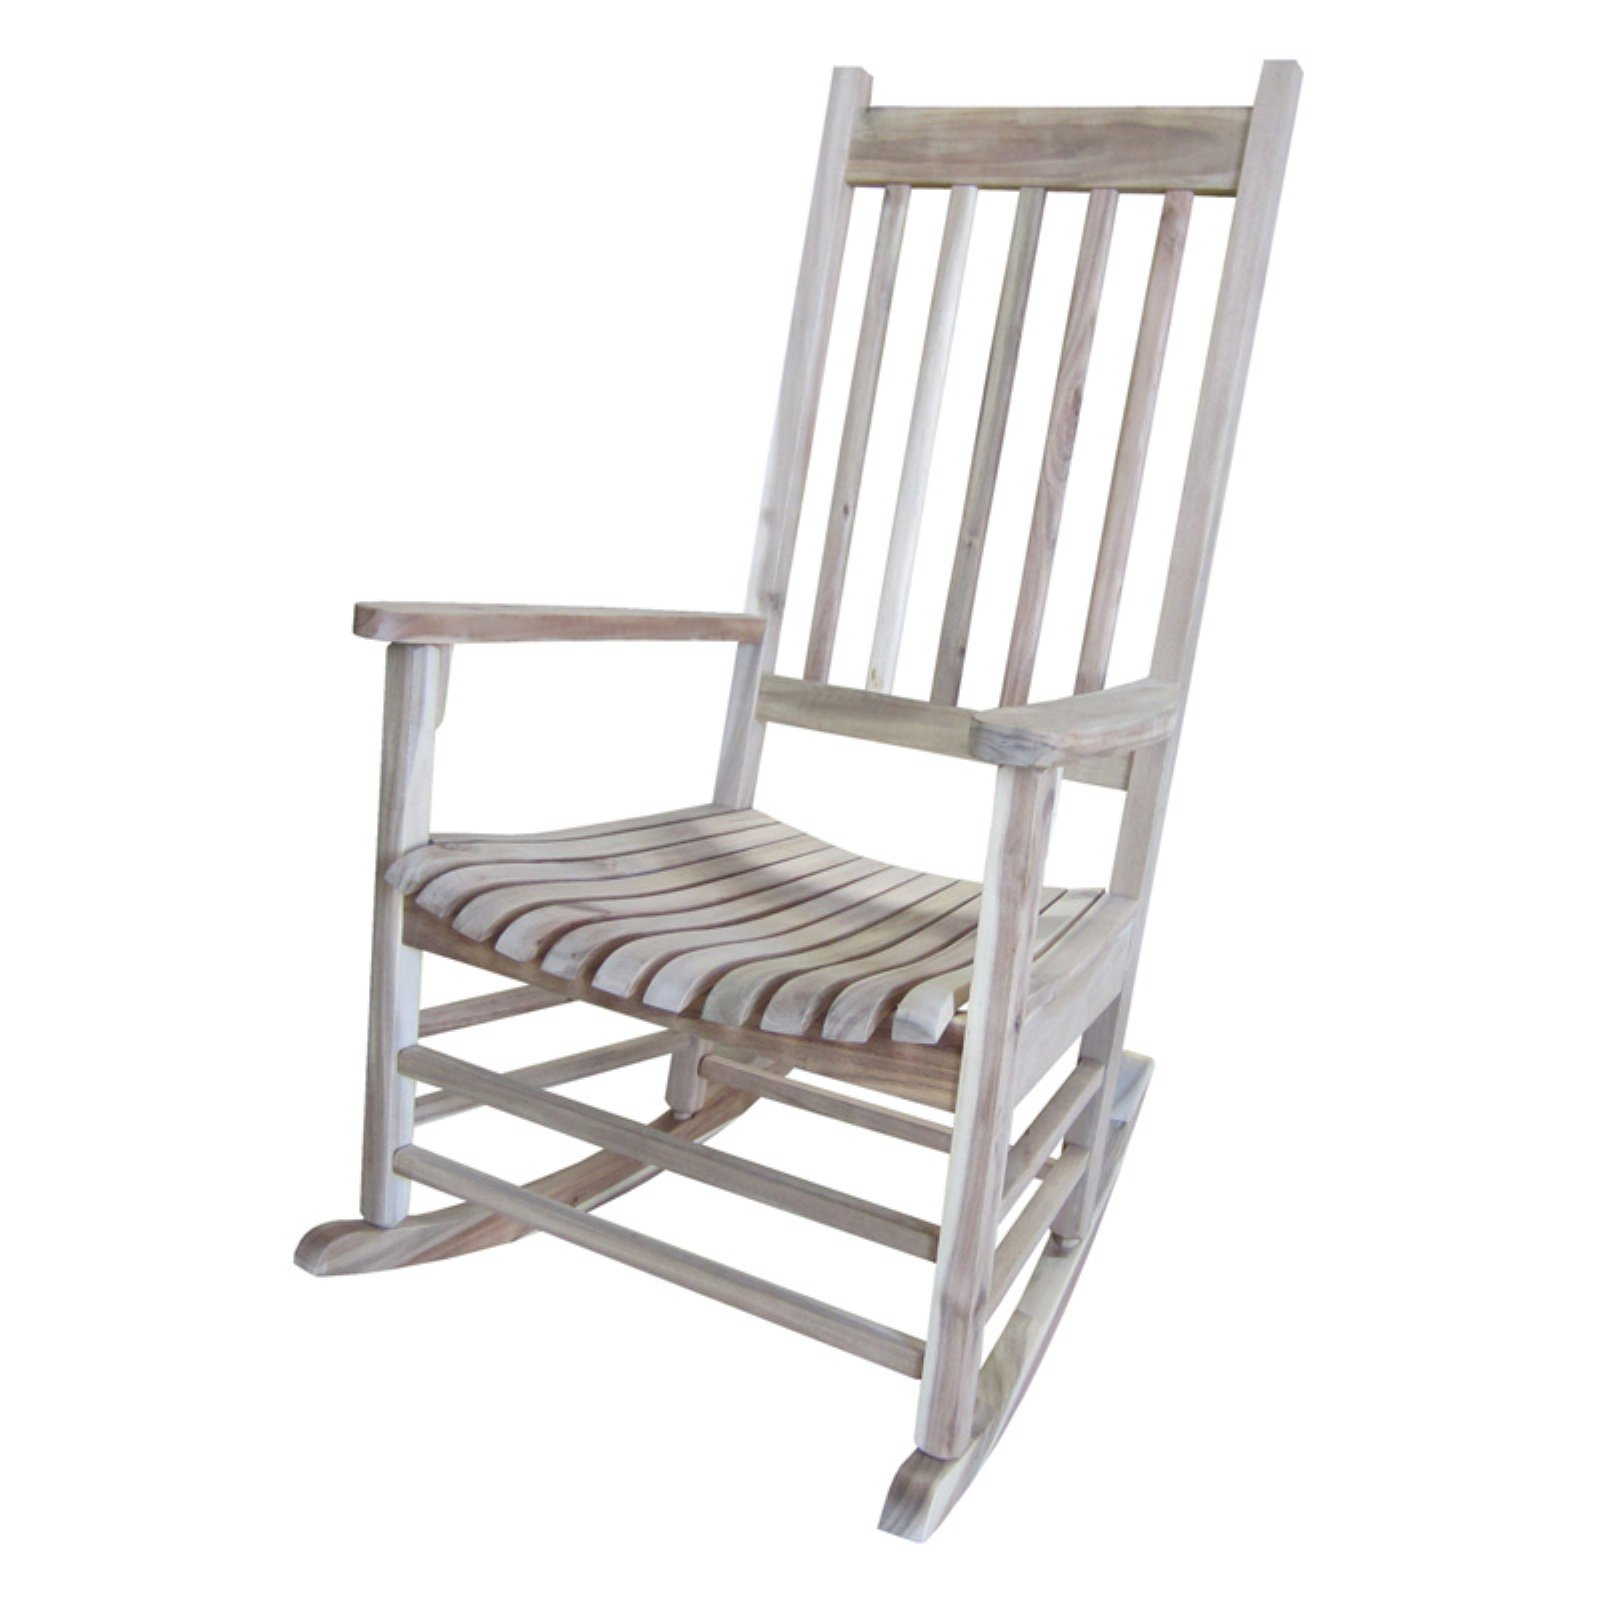 International Concepts Porch Rocker, Solid Wood, Unfinished